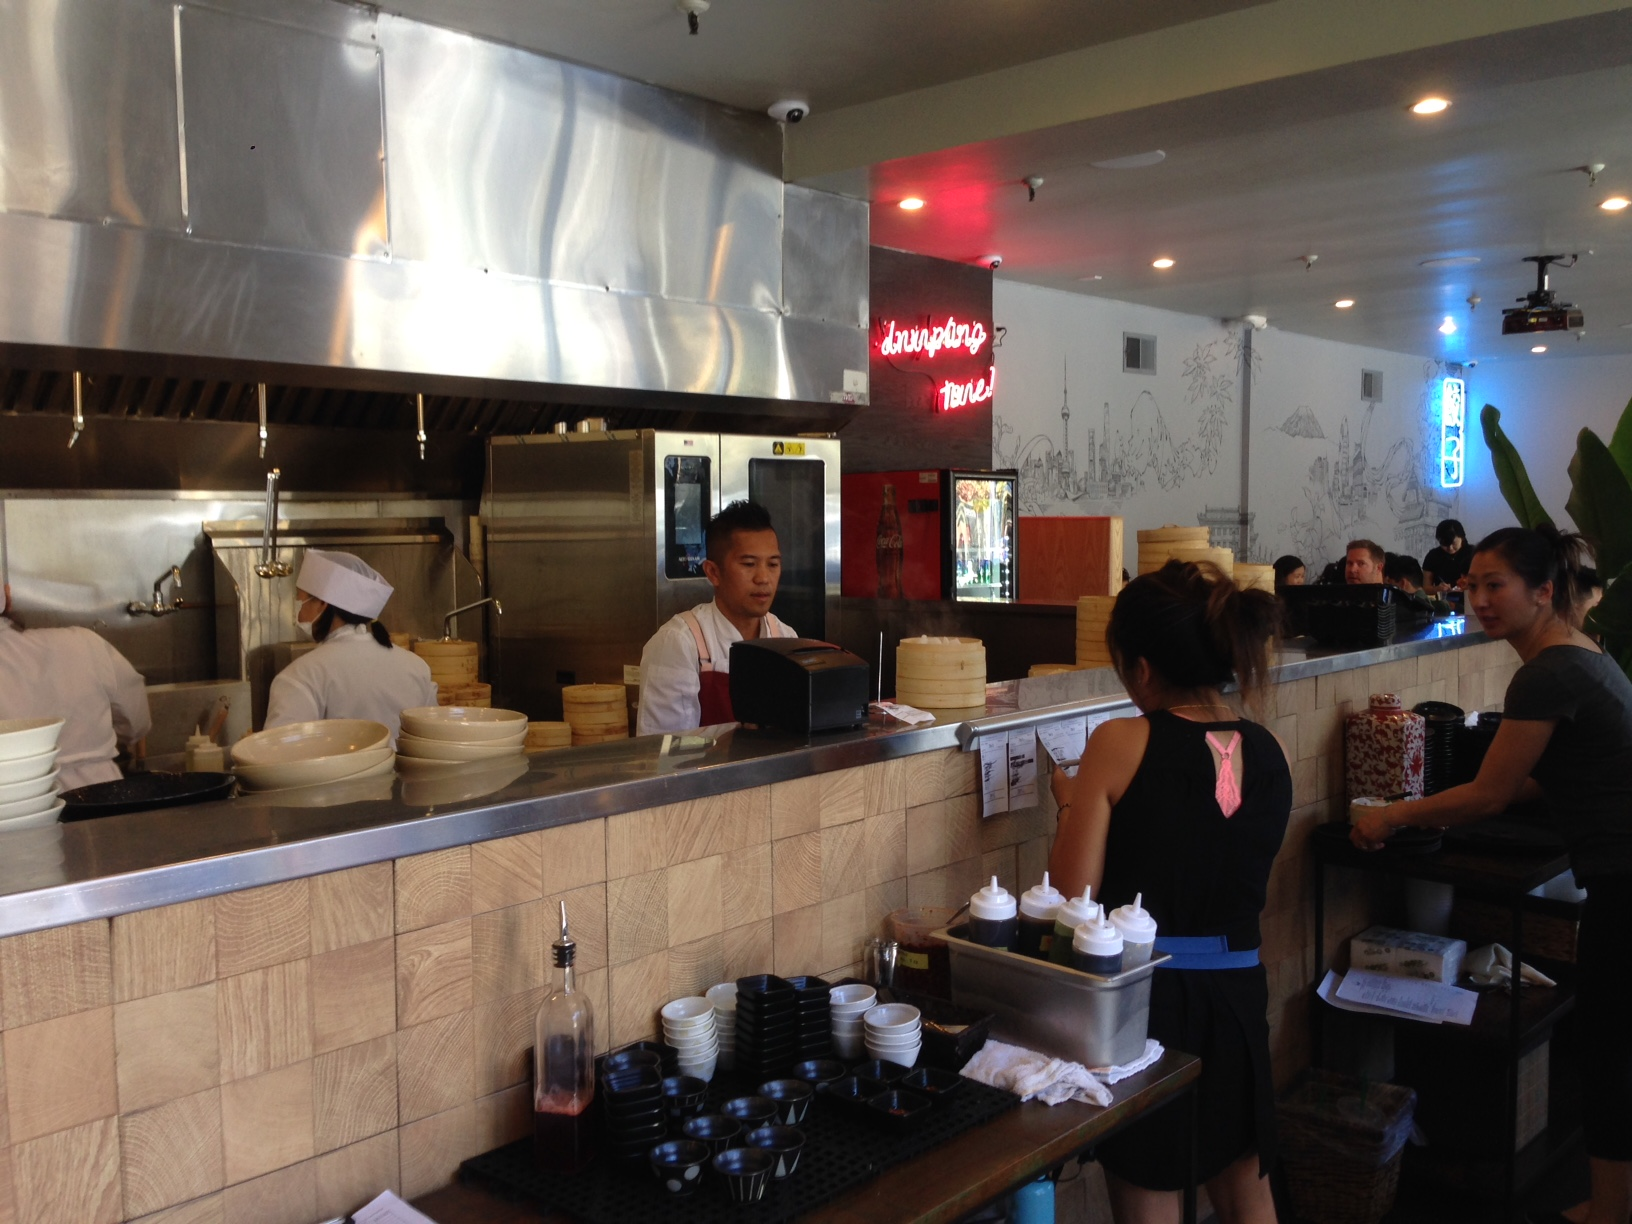 The open kitchen counter at Dumpling Time.